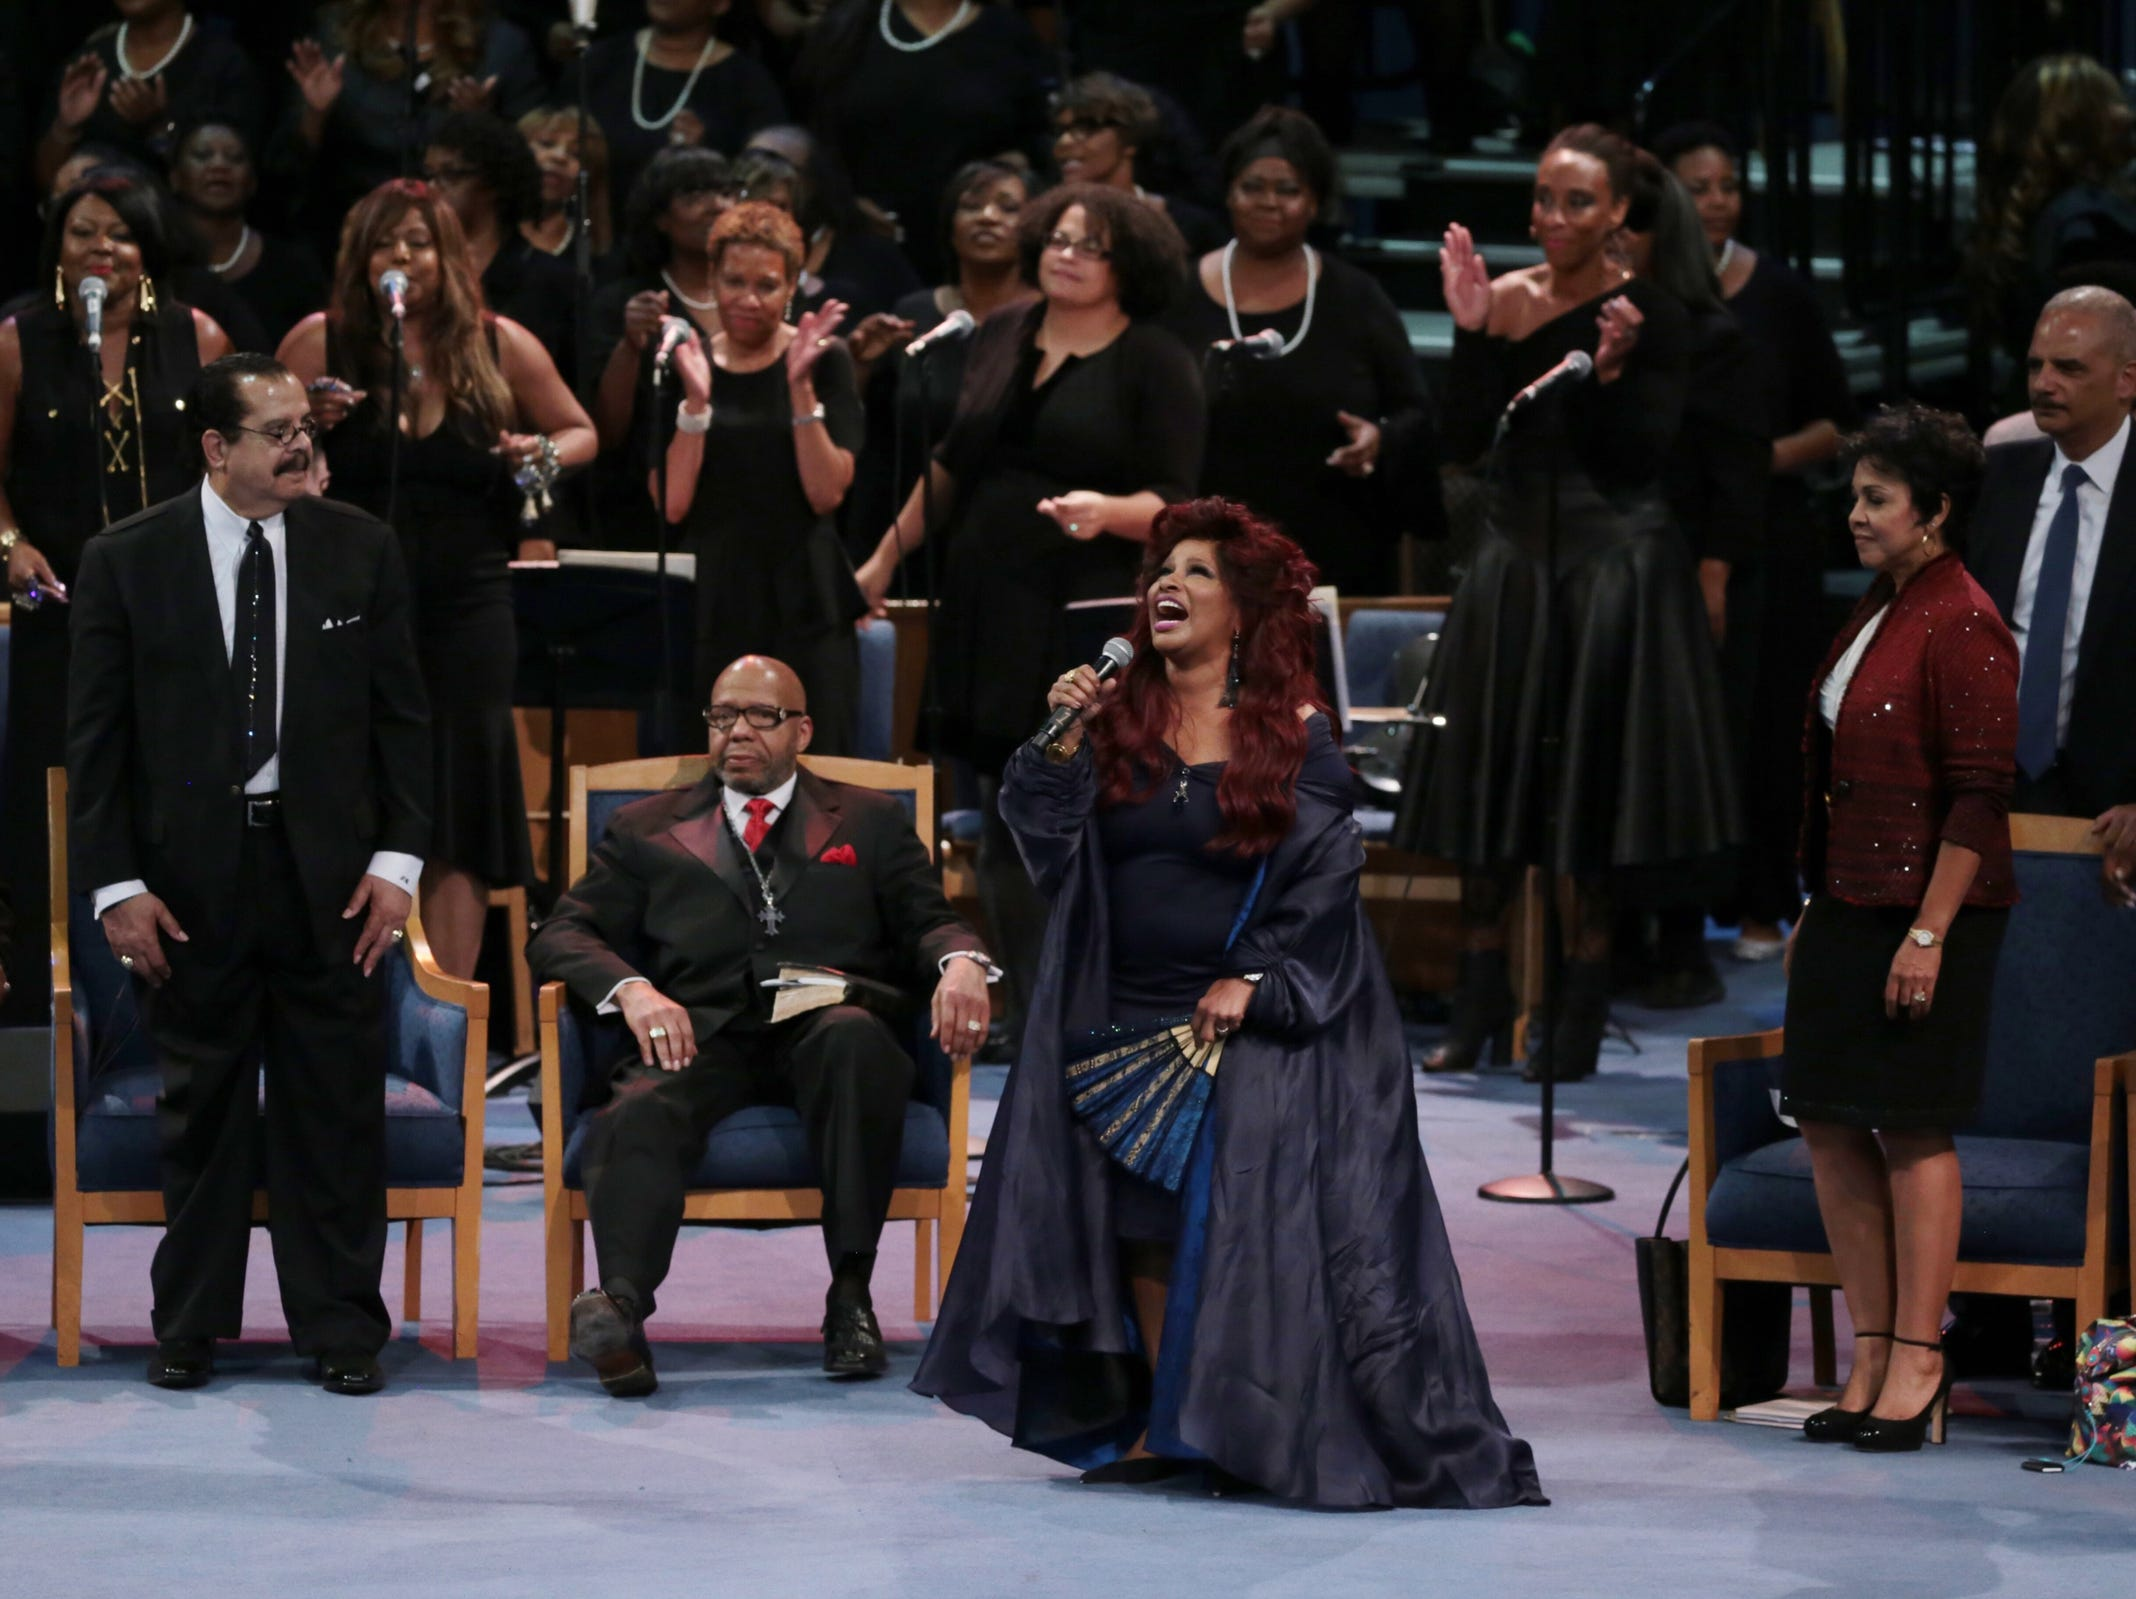 Chaka Khan performs a musical tribute during the funeral for the late Aretha Franklin at Greater Grace Temple in Detroit on Friday, August 31, 2018.